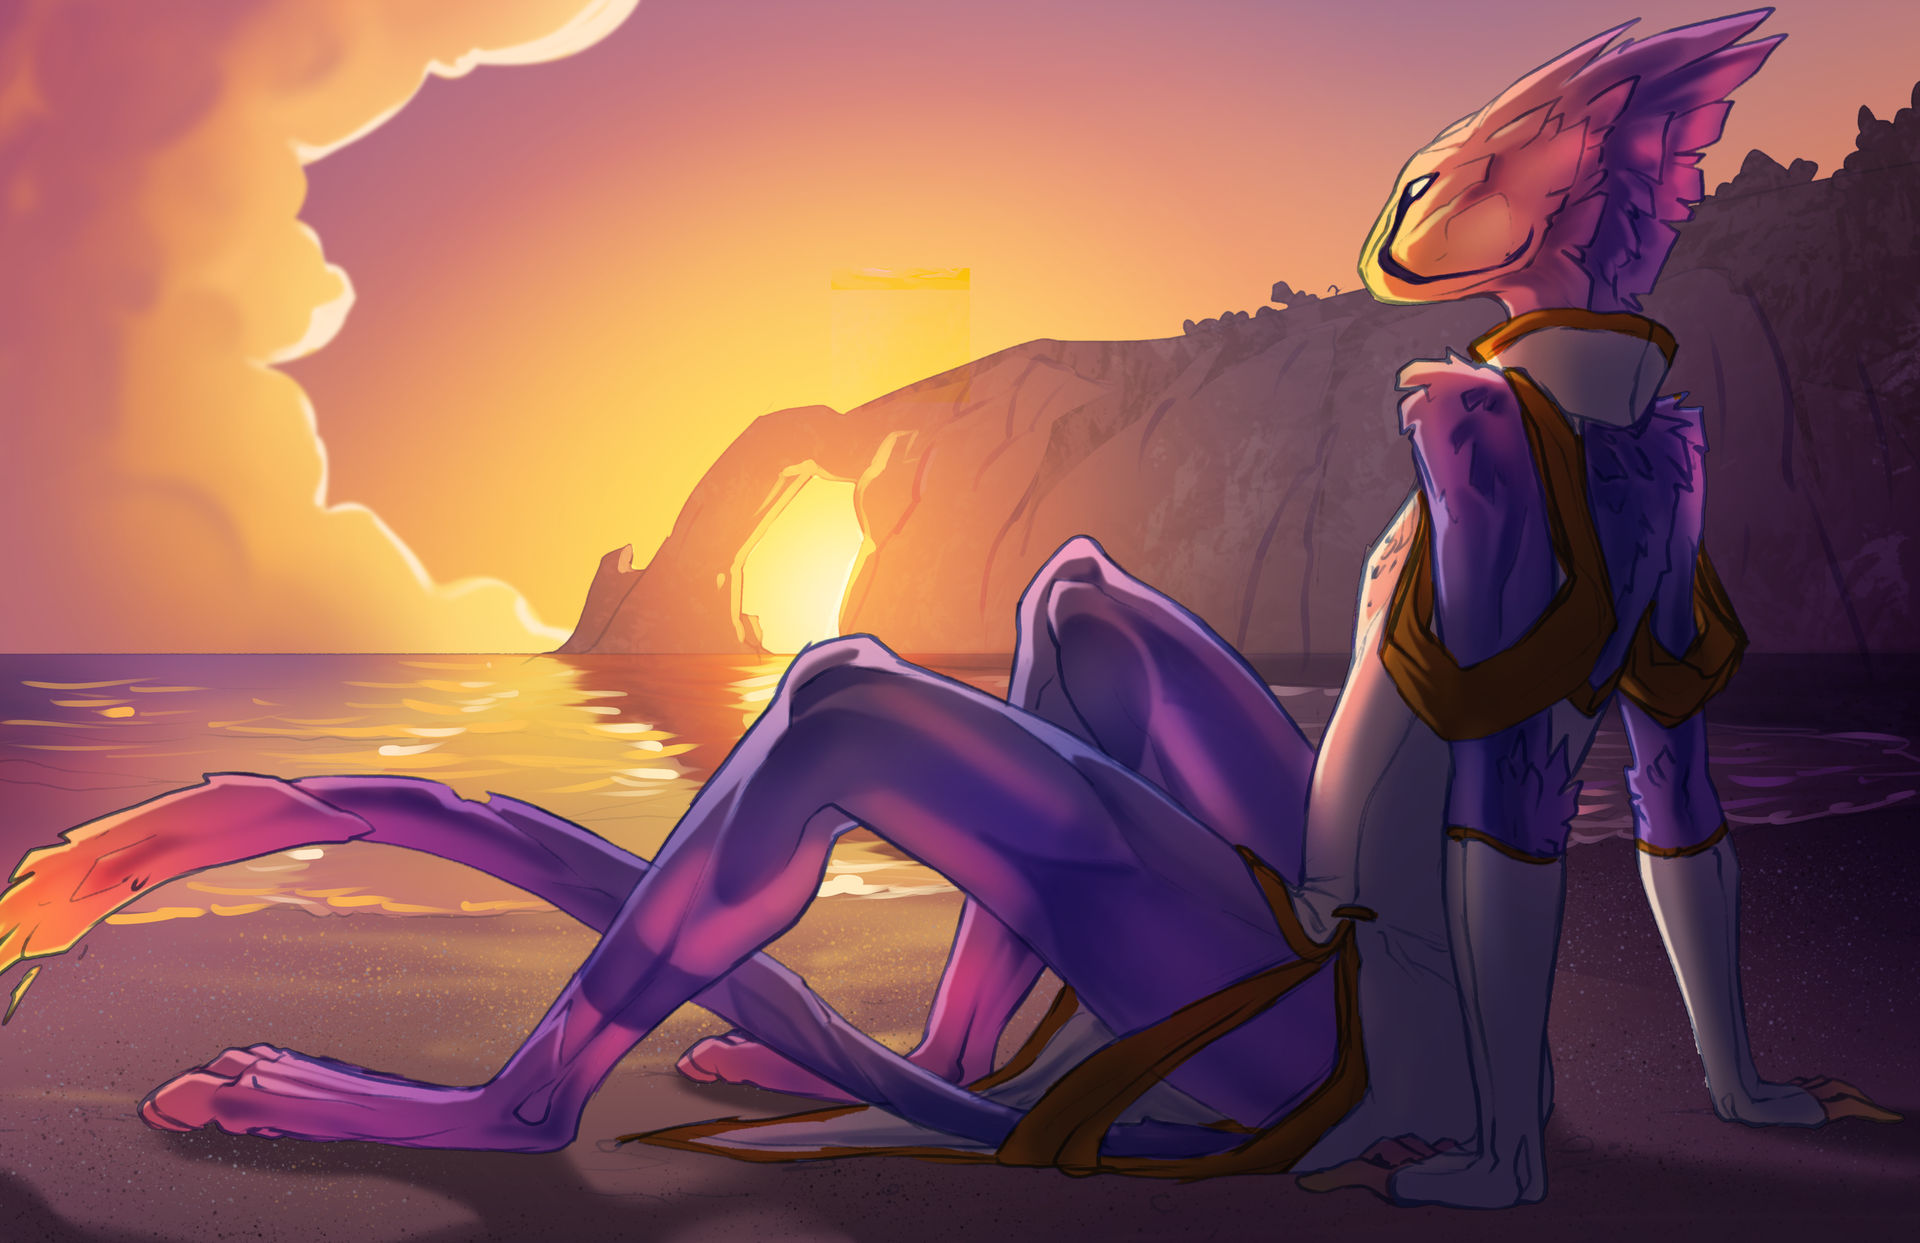 crystal_shore_commission_by_turnipberry_dczc2rc-fullview.jpg